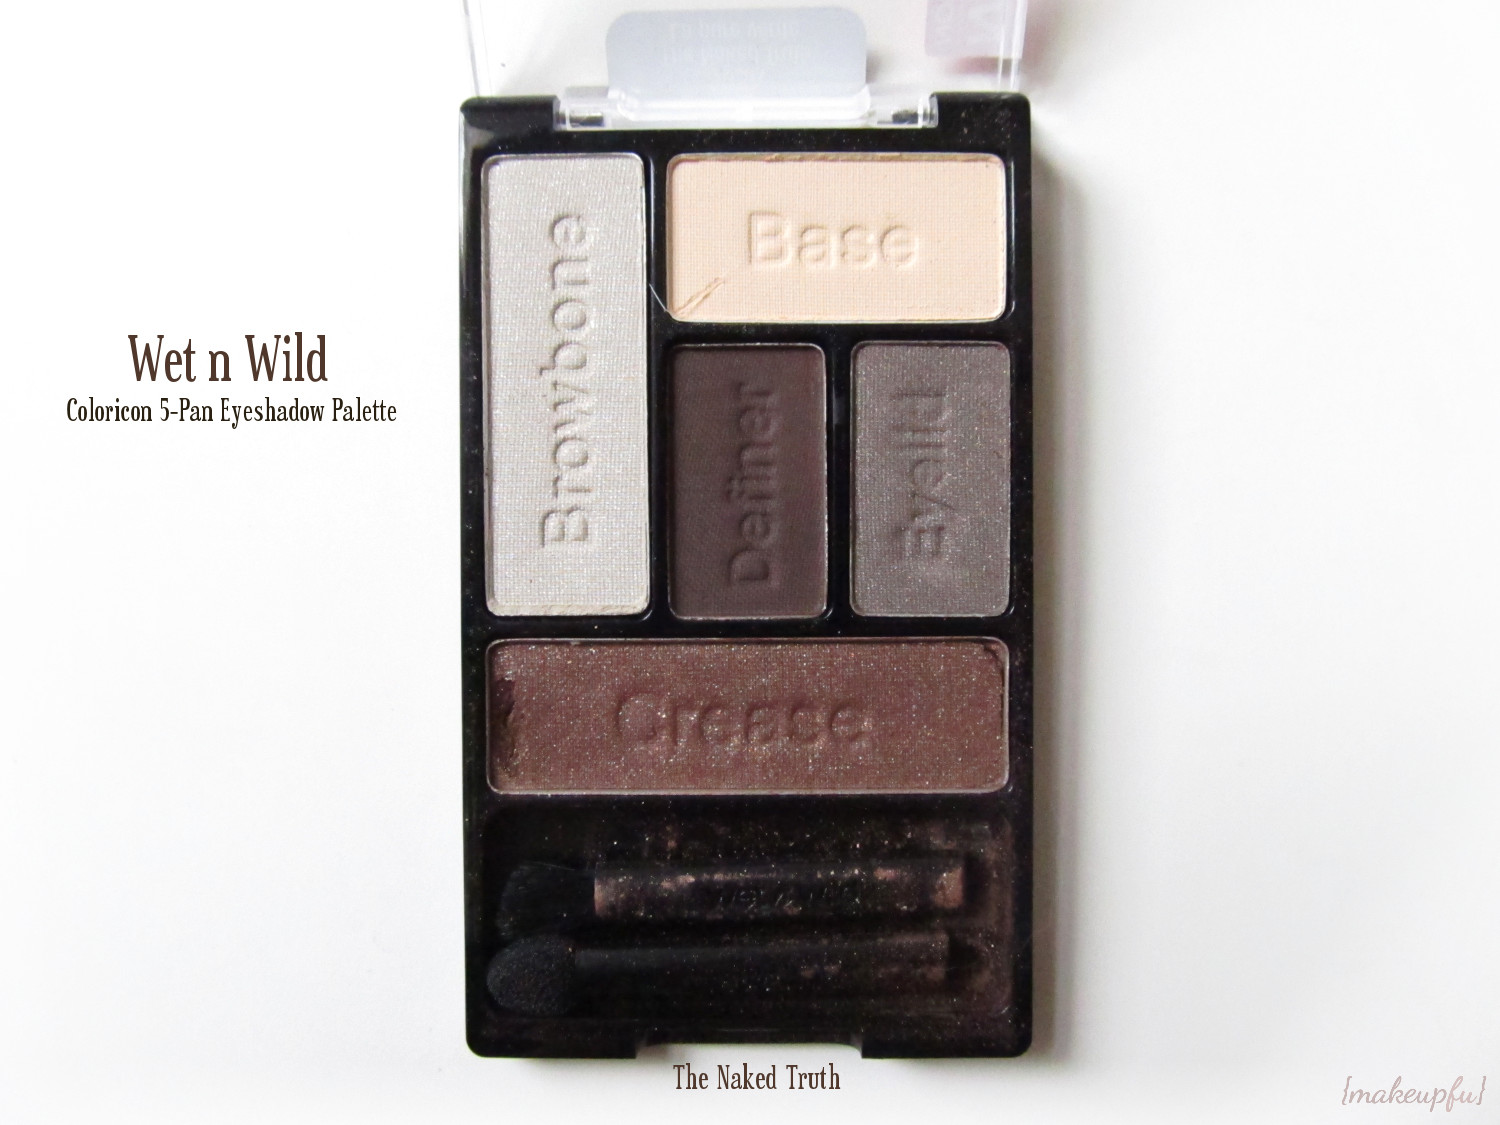 Wet n Wild The Naked Truth Color Icon Eyeshadow Palette